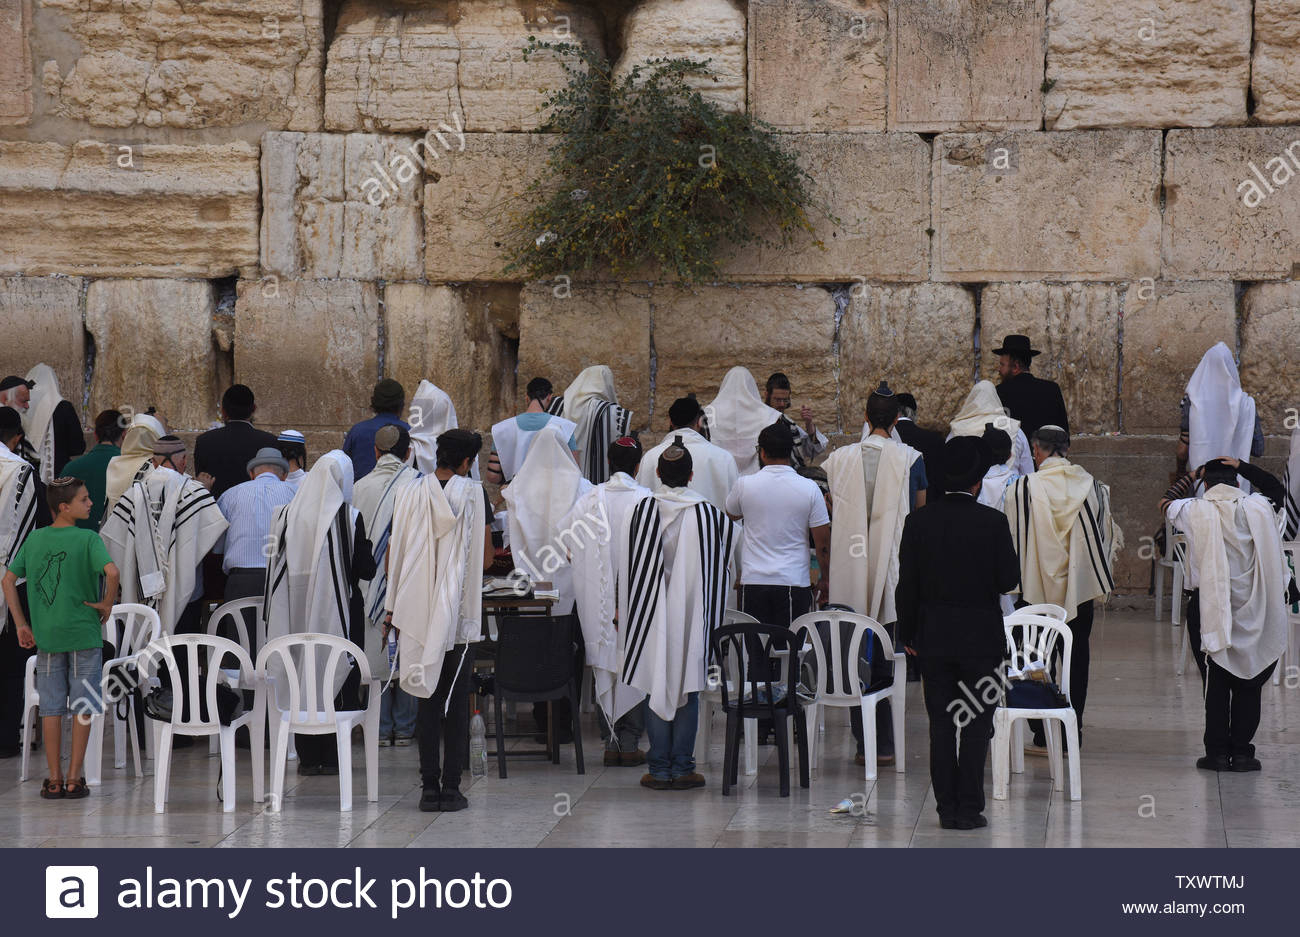 Jews Pray At The Western Wall, Judaism's Holiest Site, In Within What Year Is It According To Jews